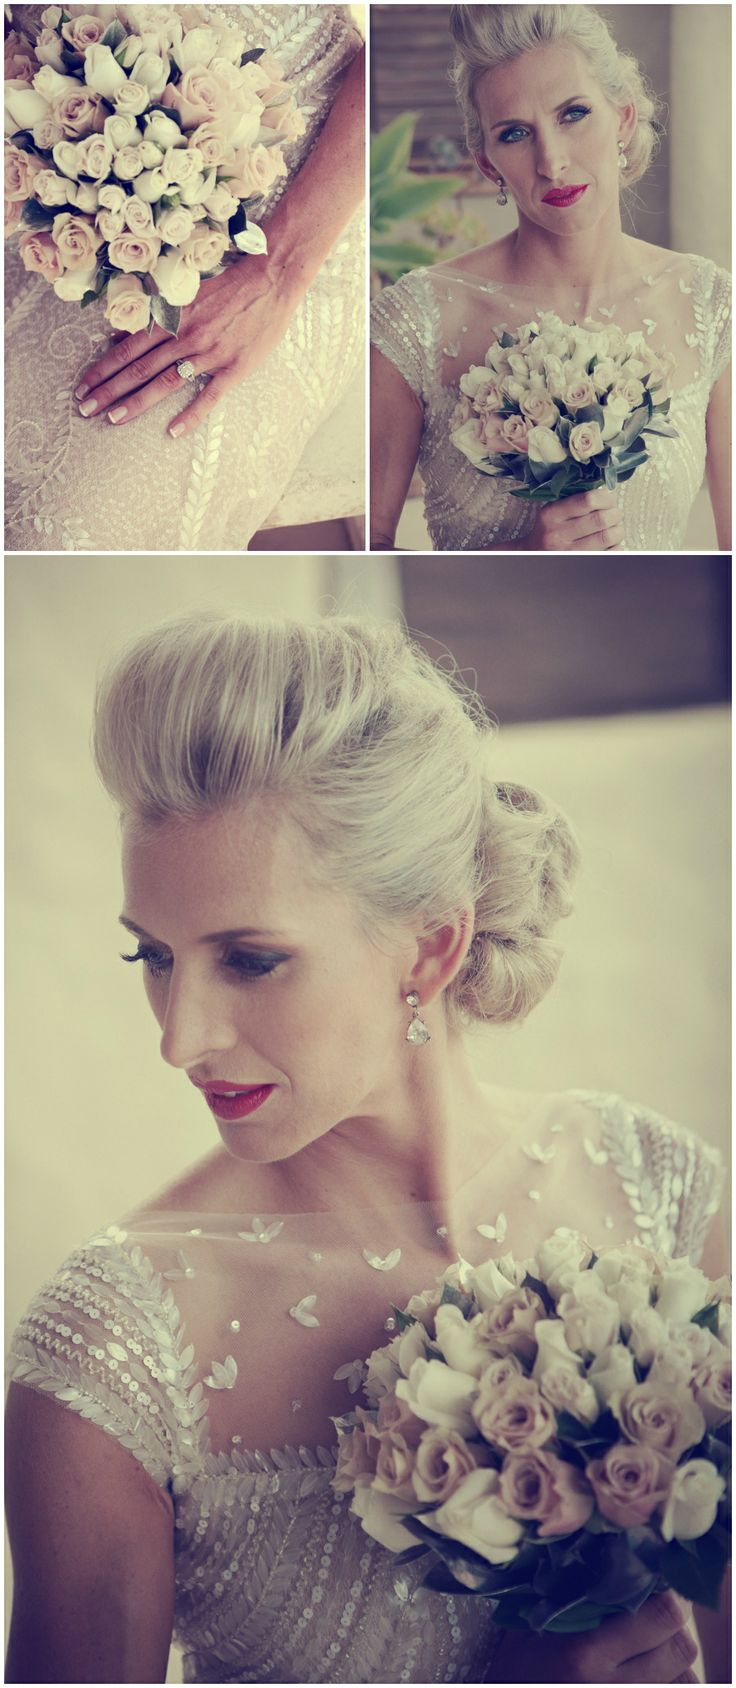 Auckland Wedding Photographer Jessica Photography Award Winning | Bron… getting ready at Delamore Lodge_ waiheke wedding photographer | http://jessicaphotography.co.nz